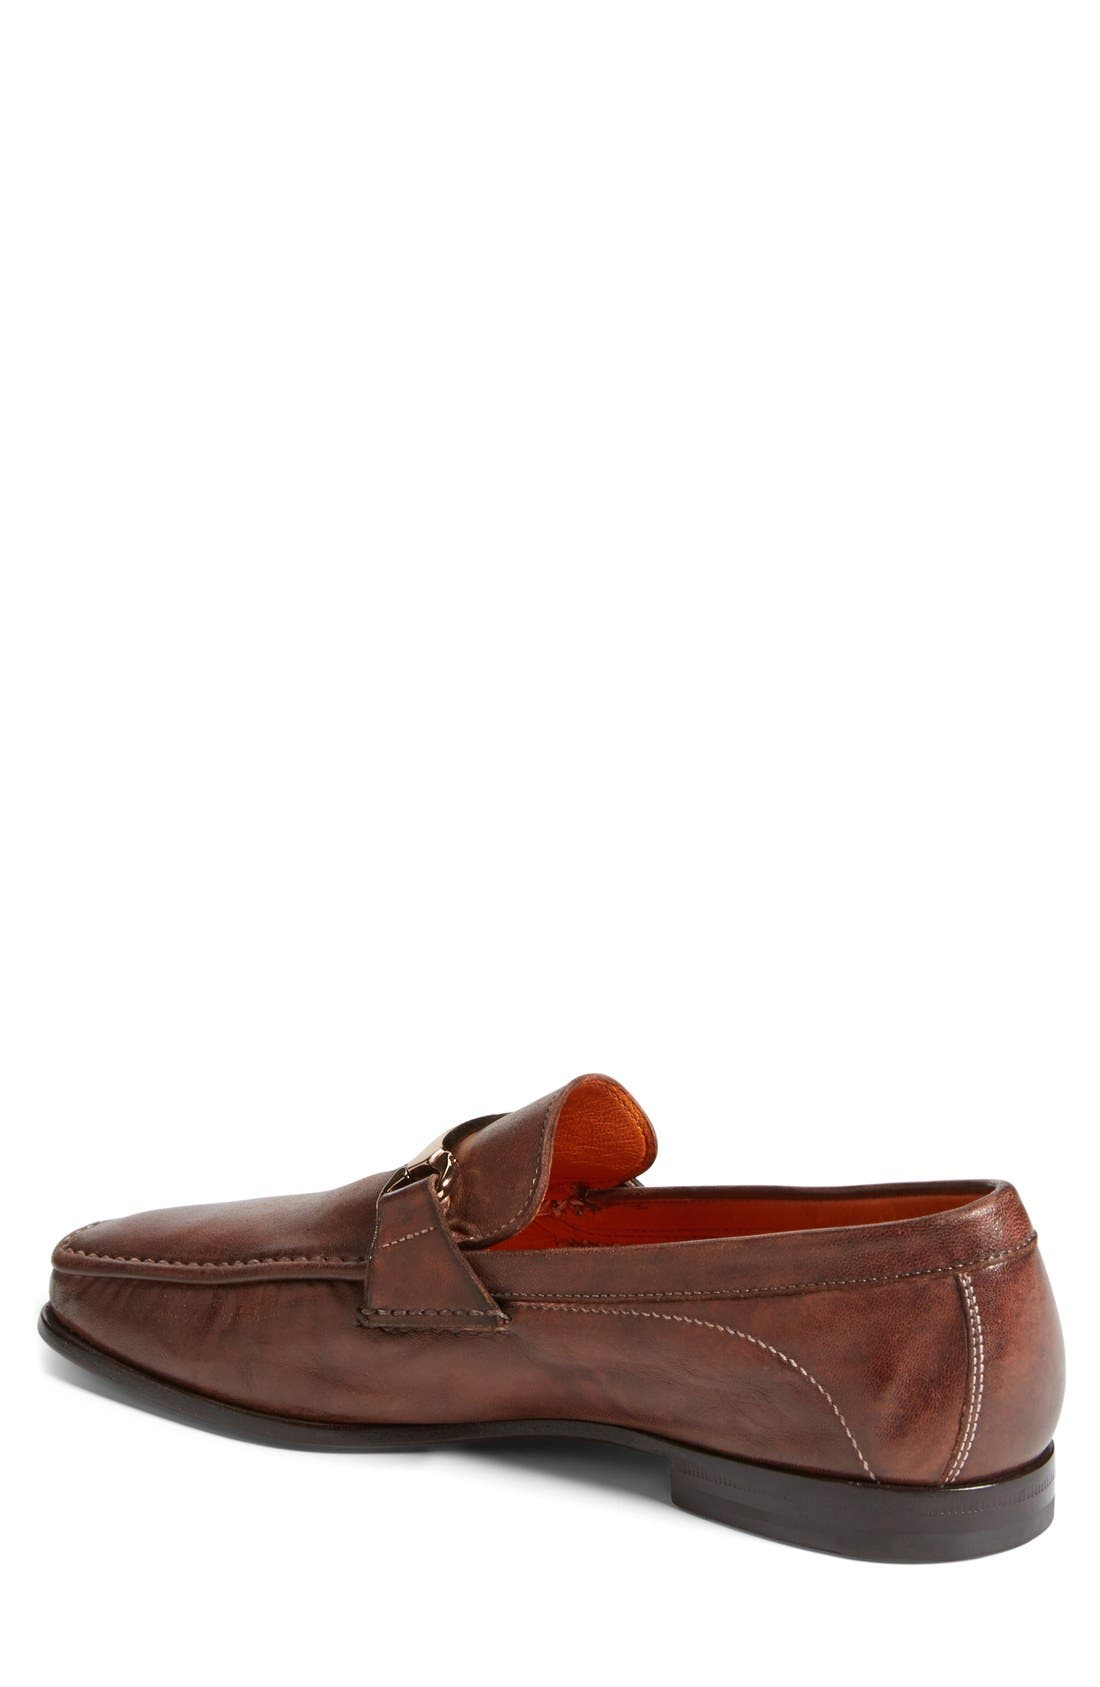 Alternate Image 2  - Santoni 'Wake' Bit Loafer (Men)